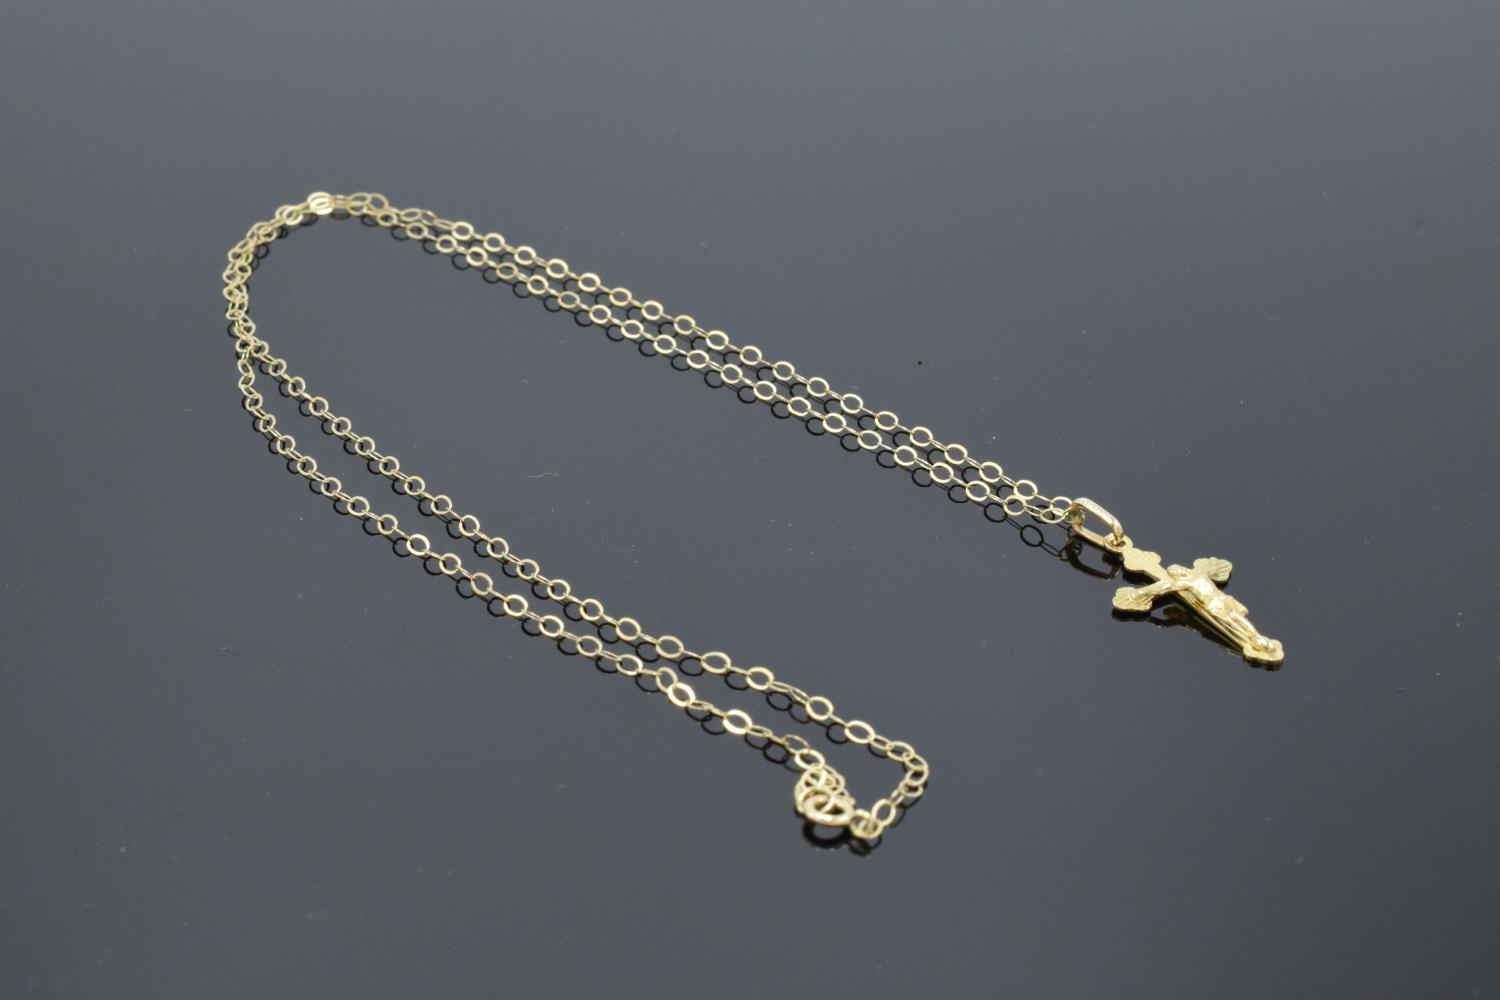 A 9ct gold (stamped 375 Italy) crucifix pendant on a gold chain. 0.8 grams. 46cm in length with